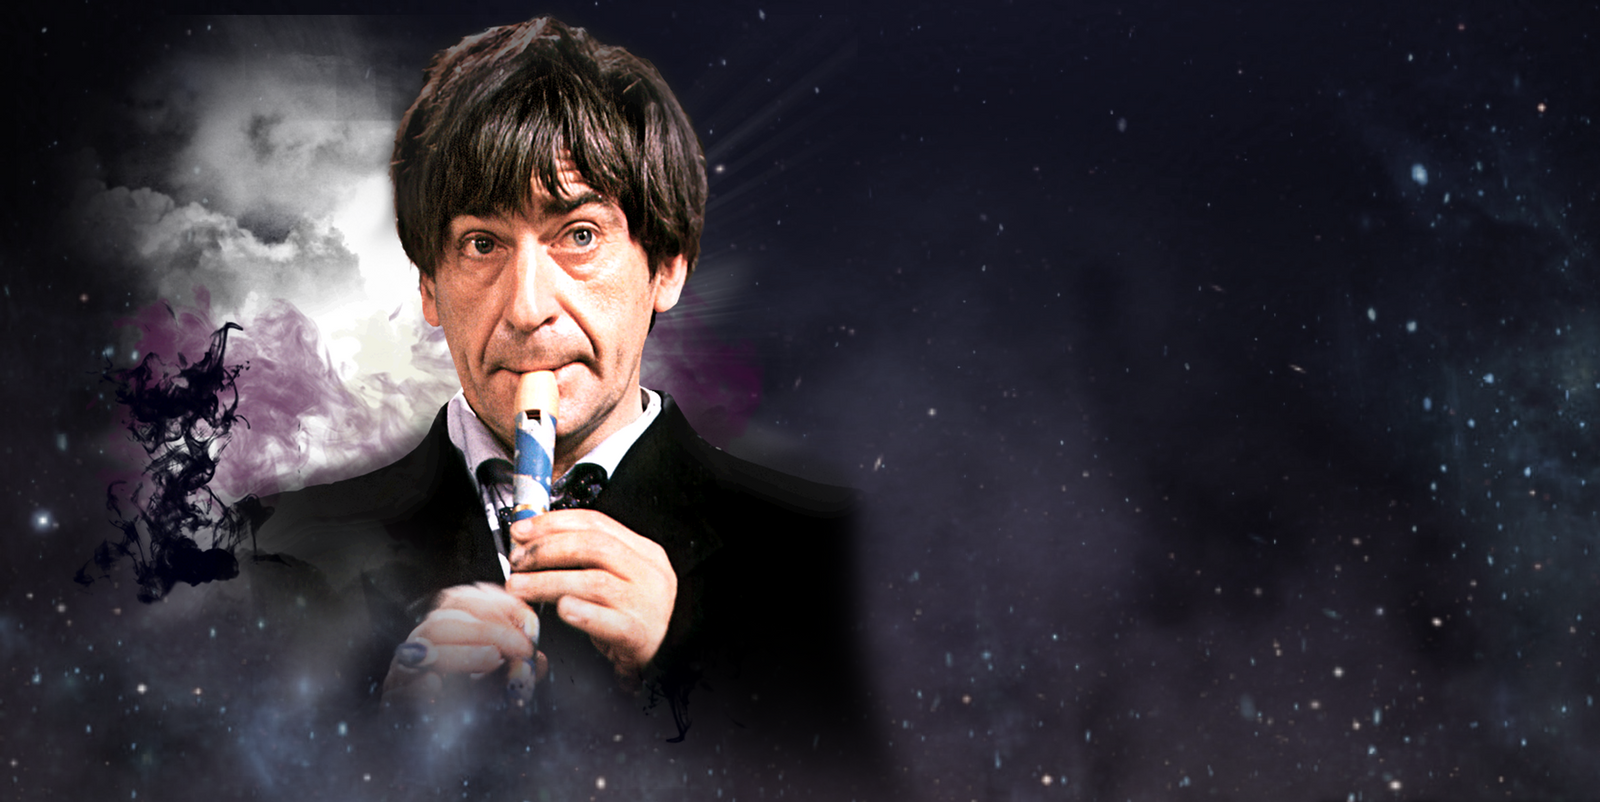 doctor who 2nd doctor by 10kcooper on deviantart